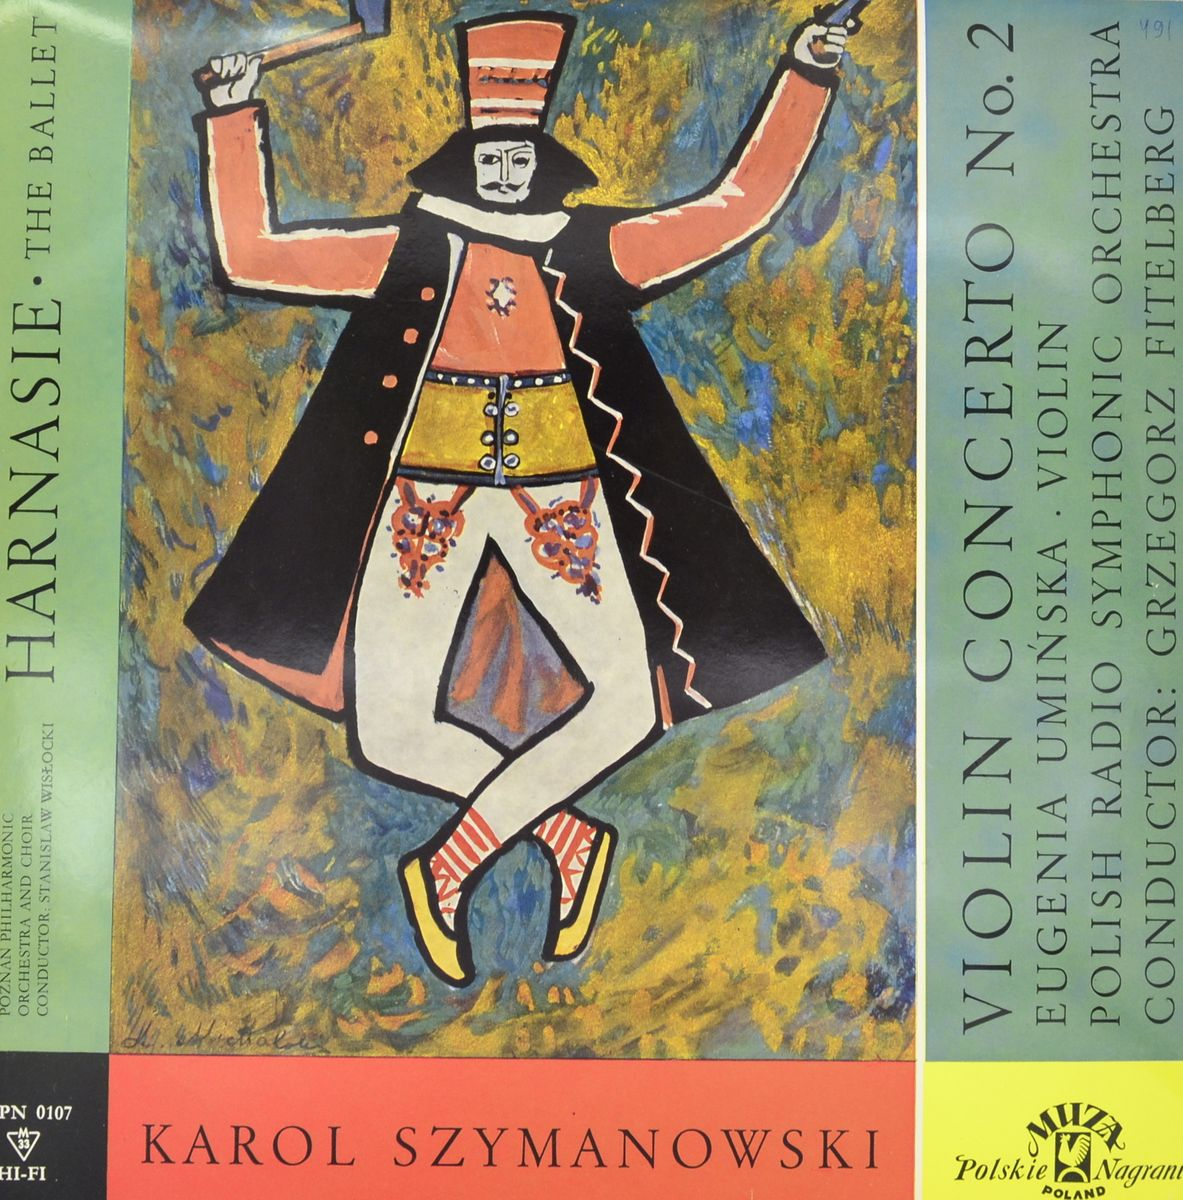 Karol Szymanowski, Poznan Philharmonic Orchestra And Choir / Eugenia Uminska, Polish Radio Symphony Orchestra – Harnasie (The Ballet) / Violin Concerto No. 2 (LP)